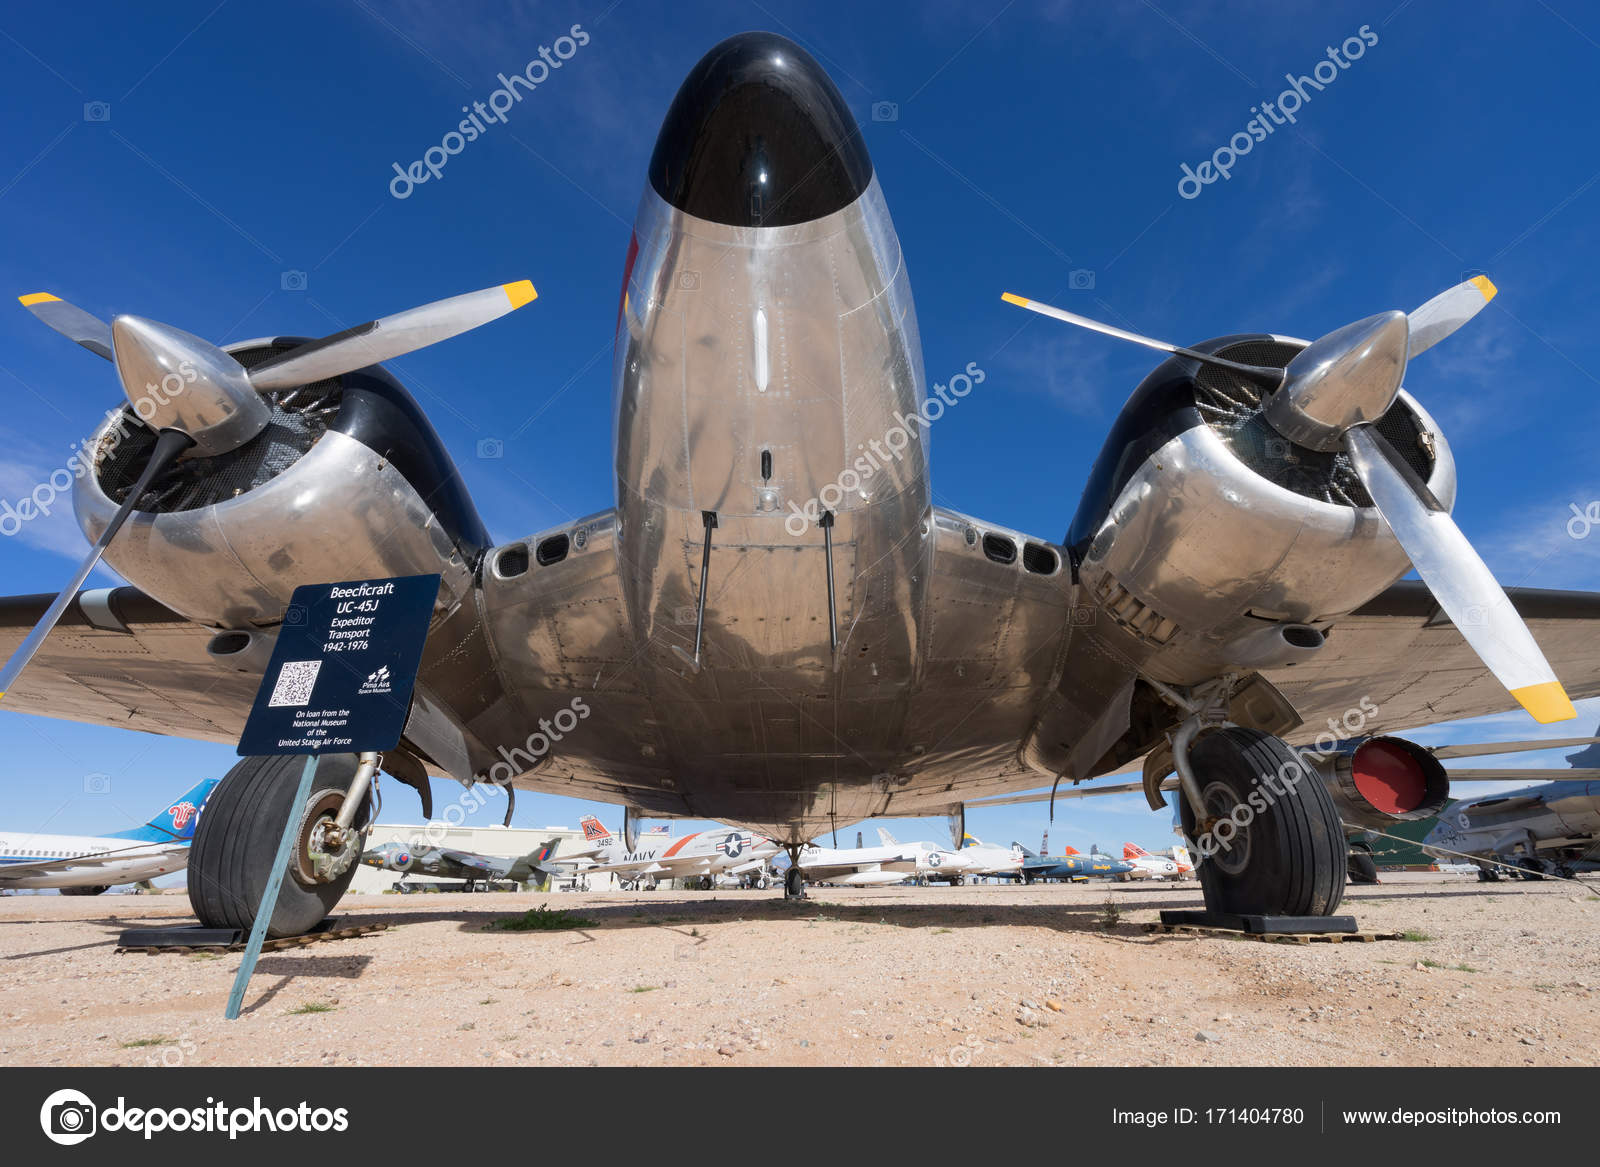 December 7 2015 Tucson Arizona Closeup Of A Vintage Aircraft On Display At The Pima Air And Space Museum Photo By Quasarphoto